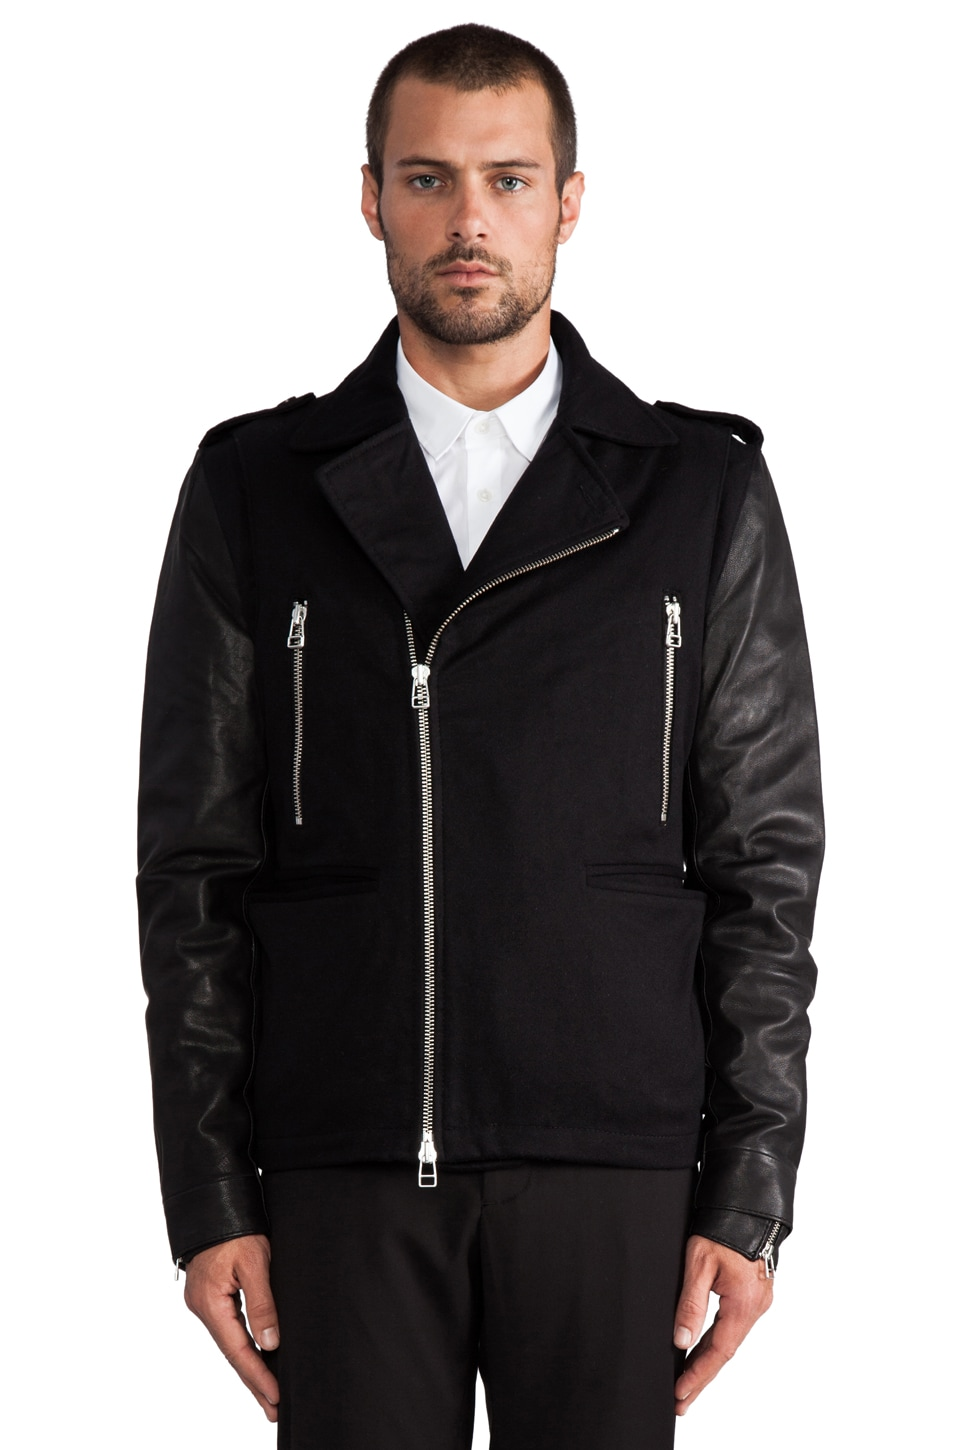 adidas SLVR Wool Leather Jacket in Black/Black